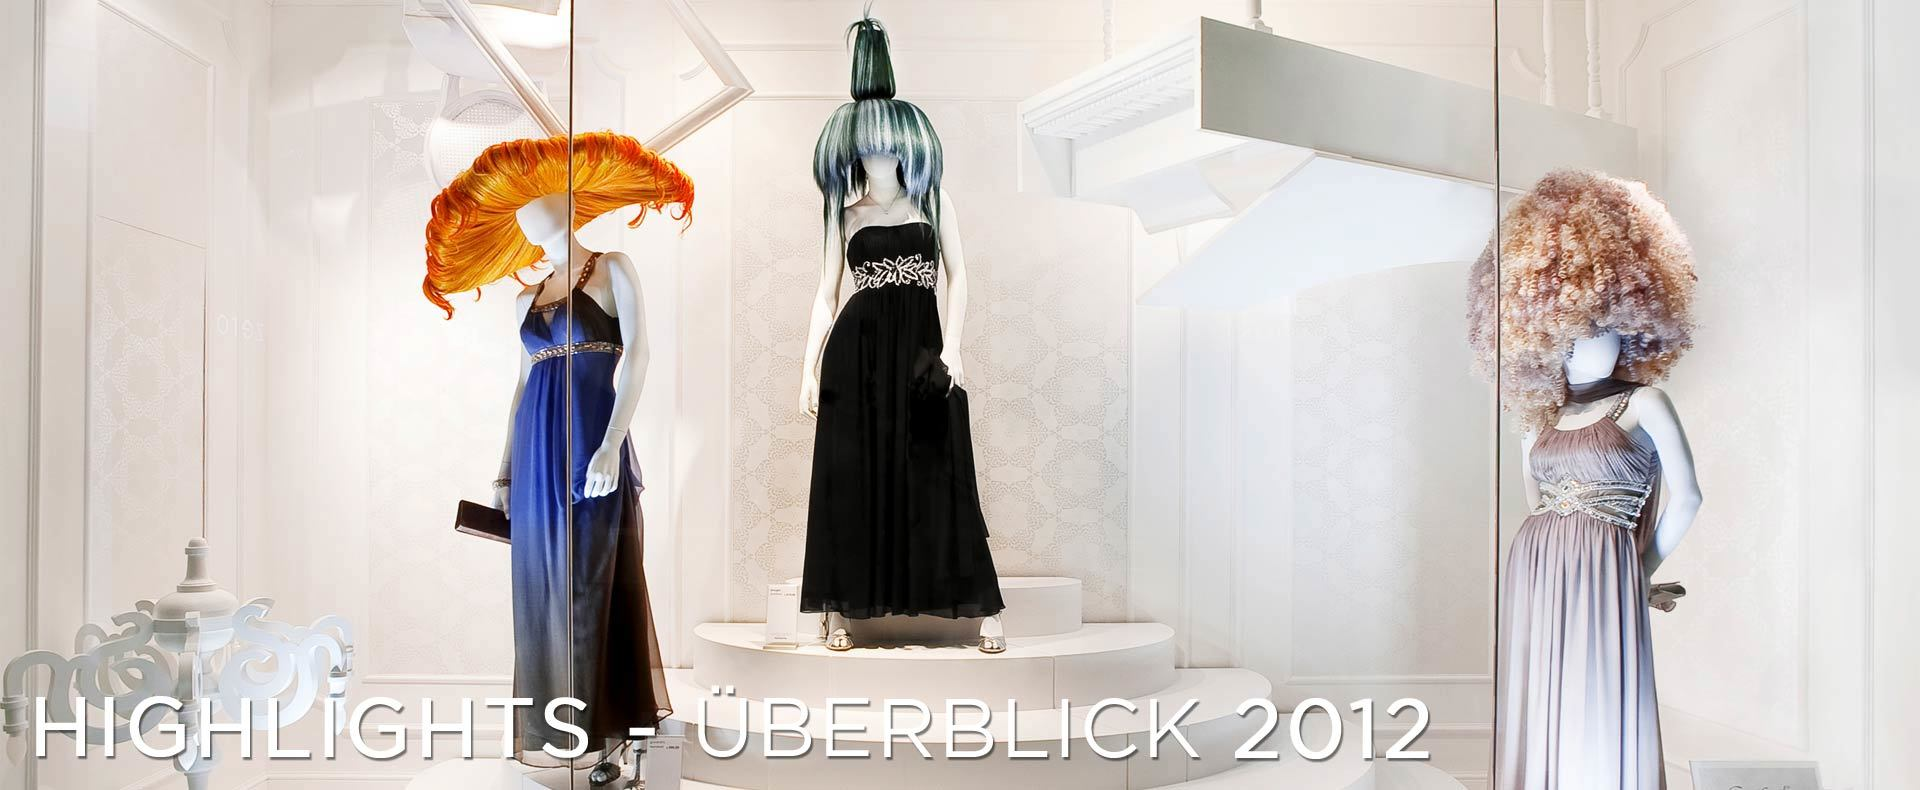 Highlights von Great Lengths 2012 - Überblick (© Great Lengths)